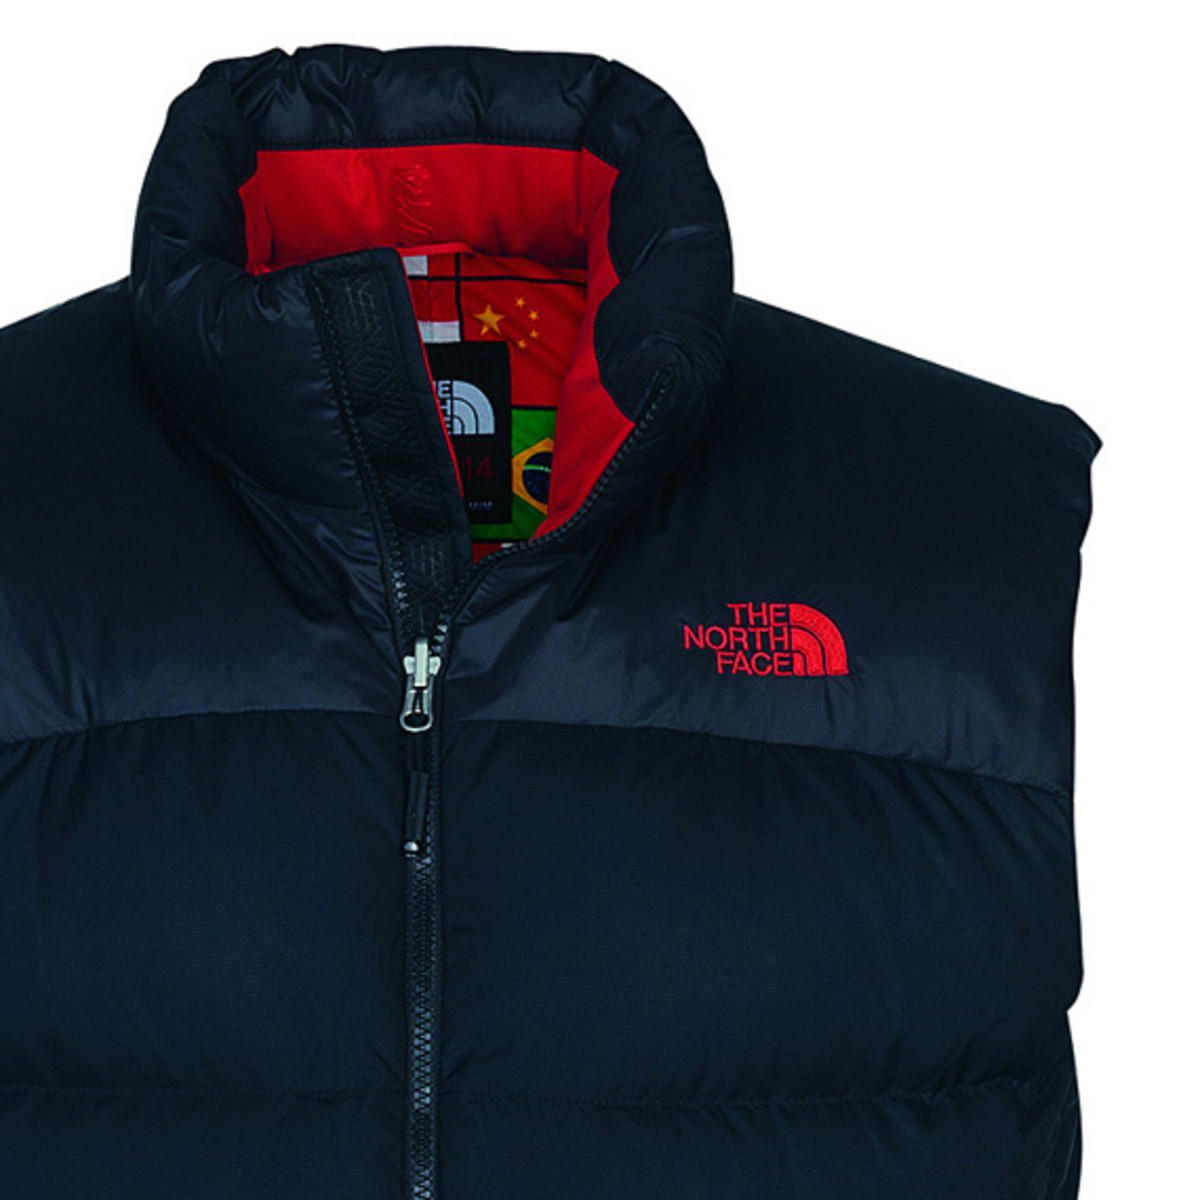 the-north-face-2014-winter-olympics-sochi-team-usa-villagewear-collection-mens-01a